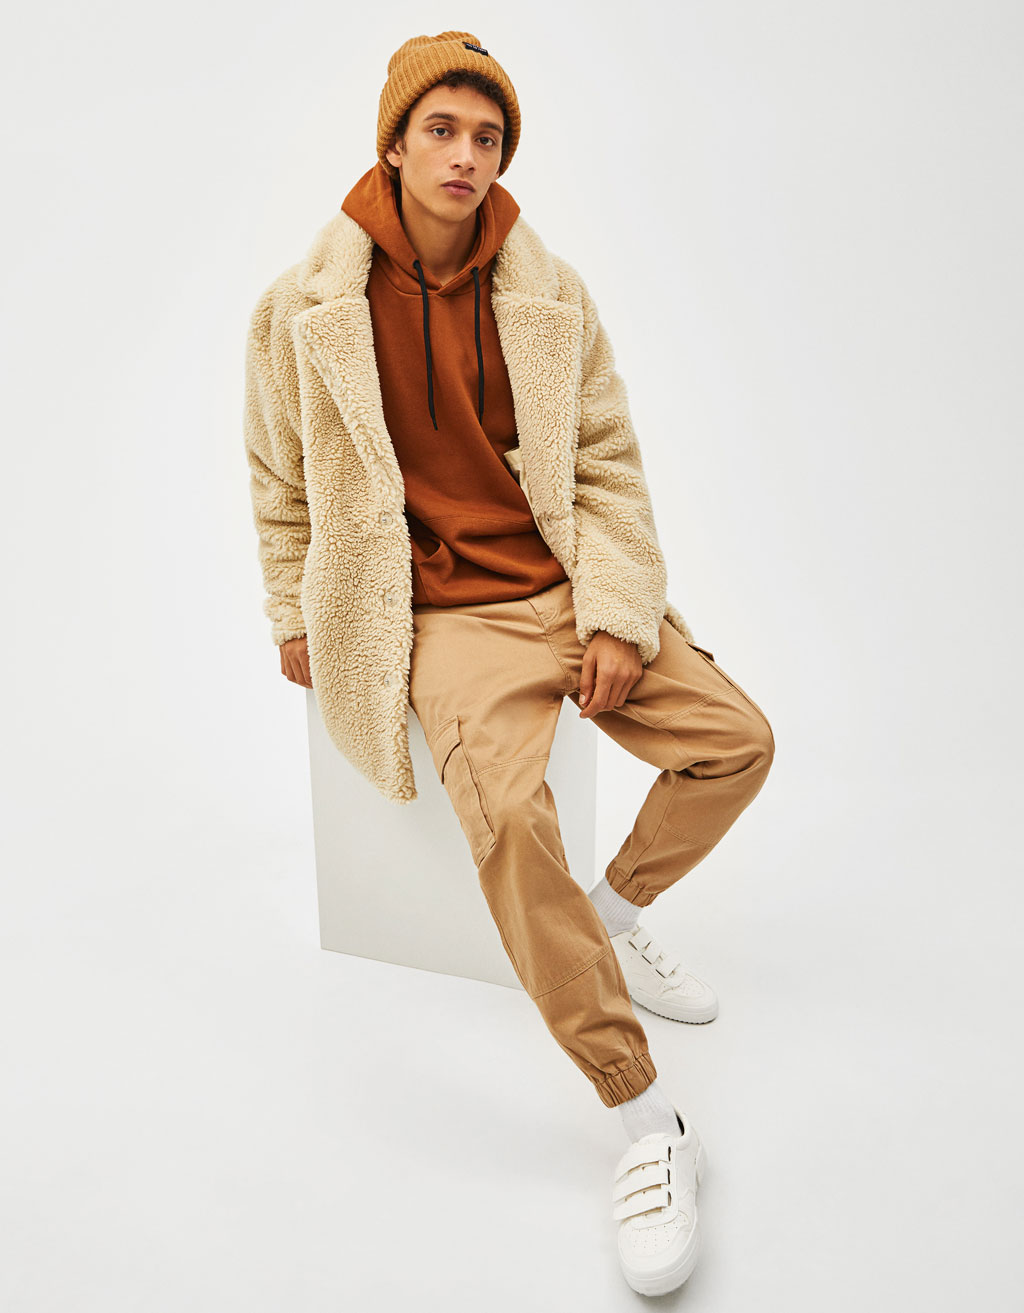 Manteau Imitation Peau De Mouton Manteaux Bershka France